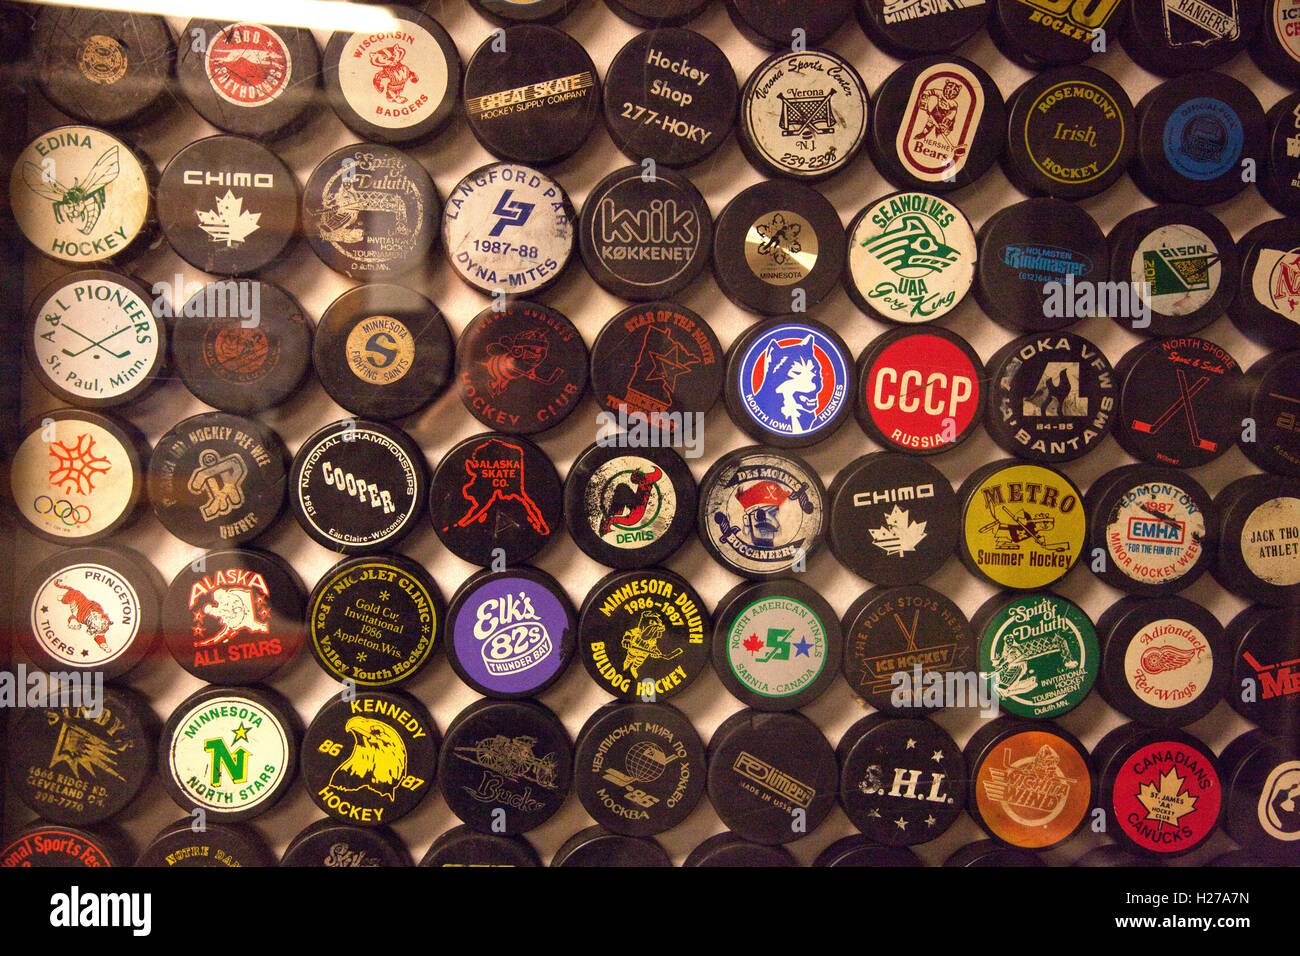 Array collection of team and tournament hockey pucks on display at ...